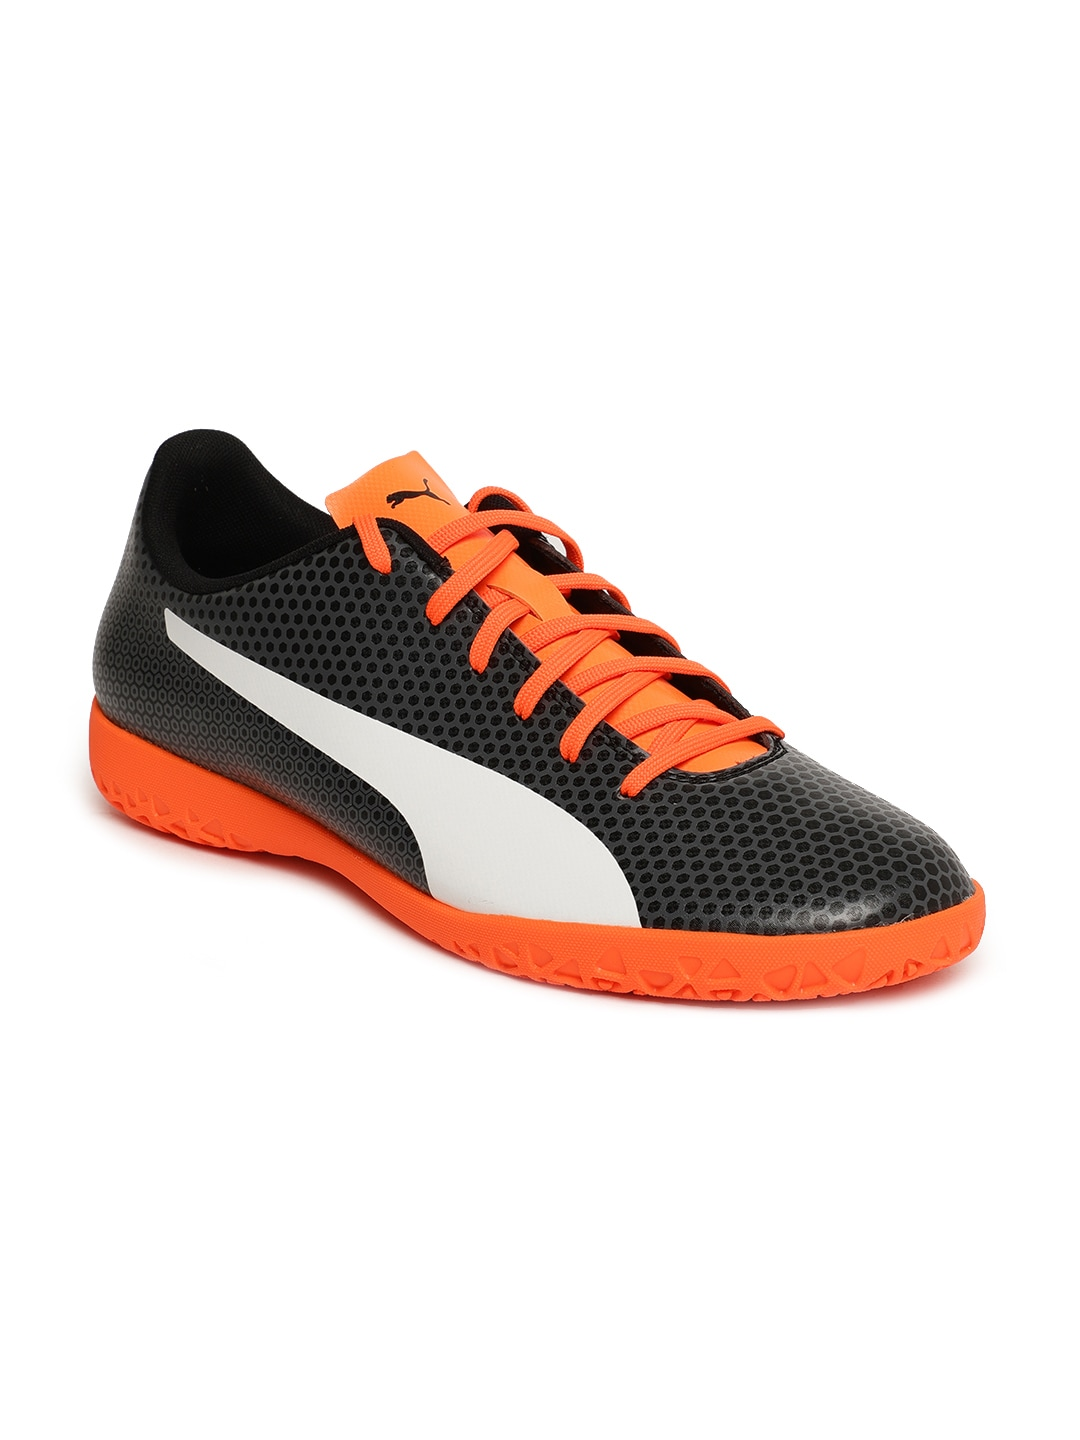 826b6536c5 Puma Shoes - Buy Puma Shoes for Men   Women Online in India